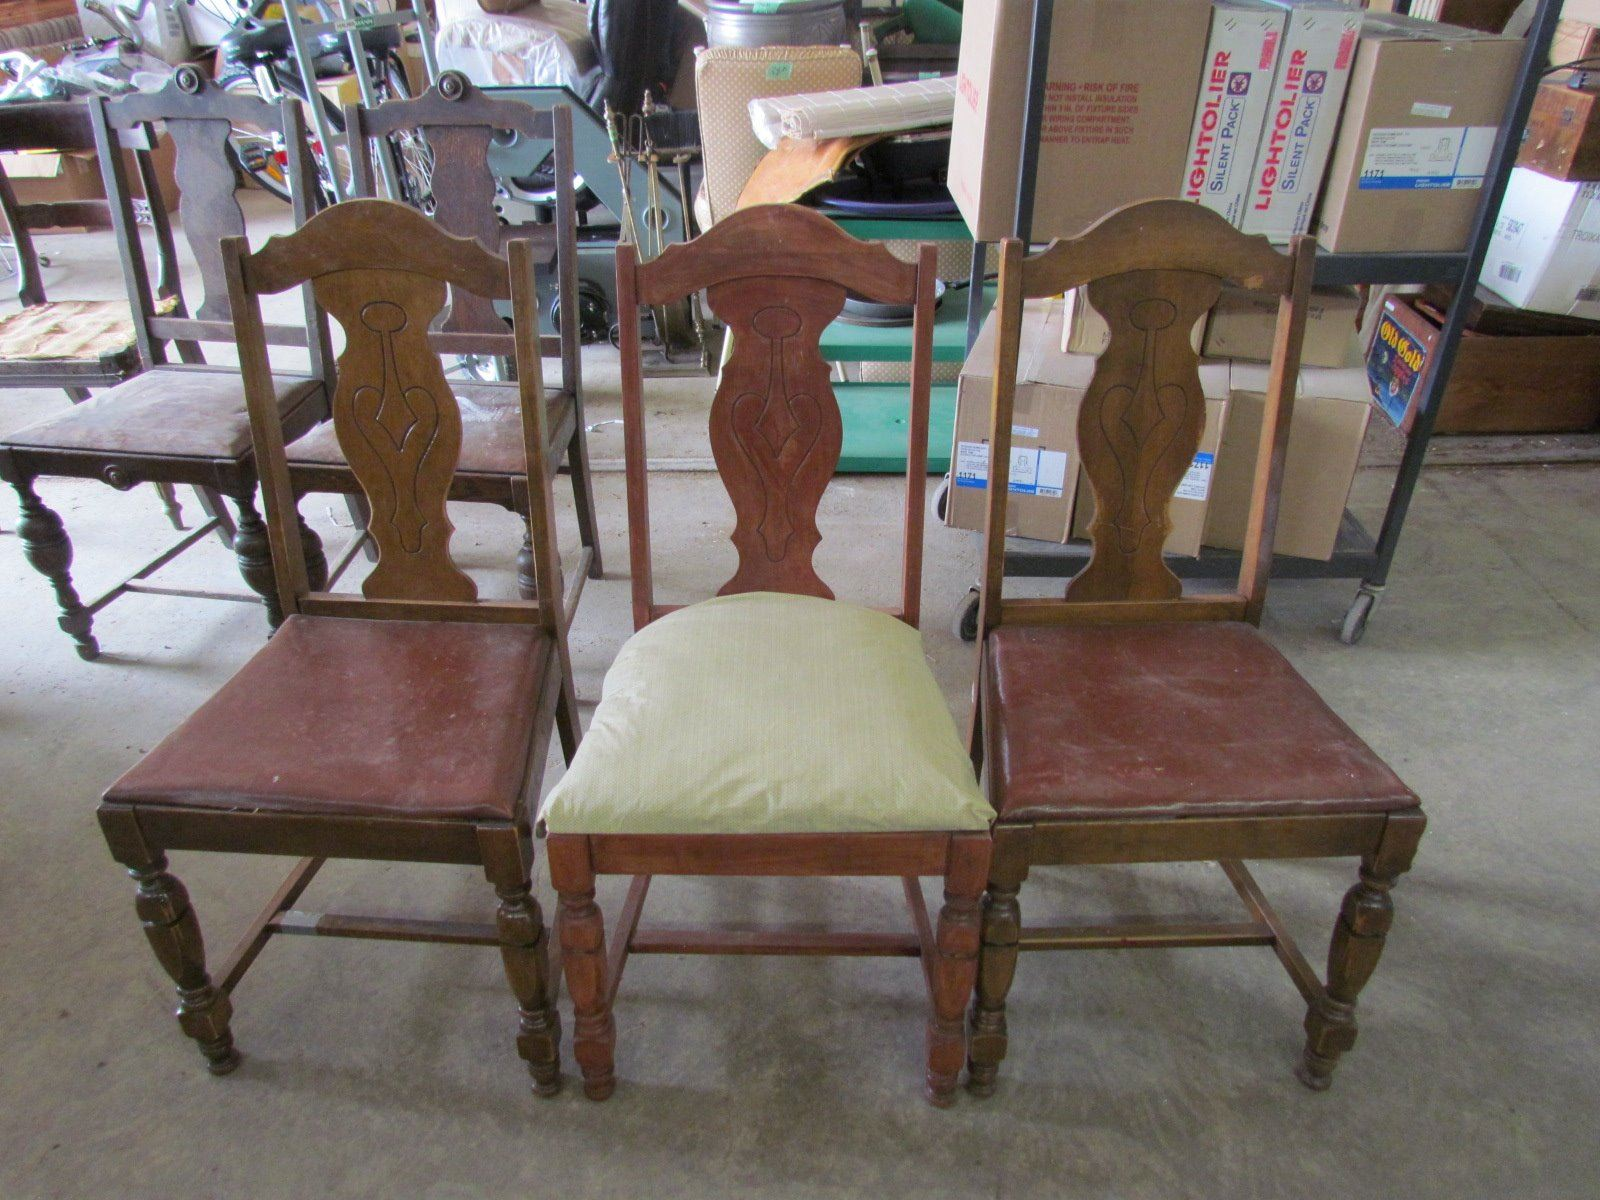 Genial Image 1 : 3 Antique Chairs   1 Chair Cushion Replaced ...